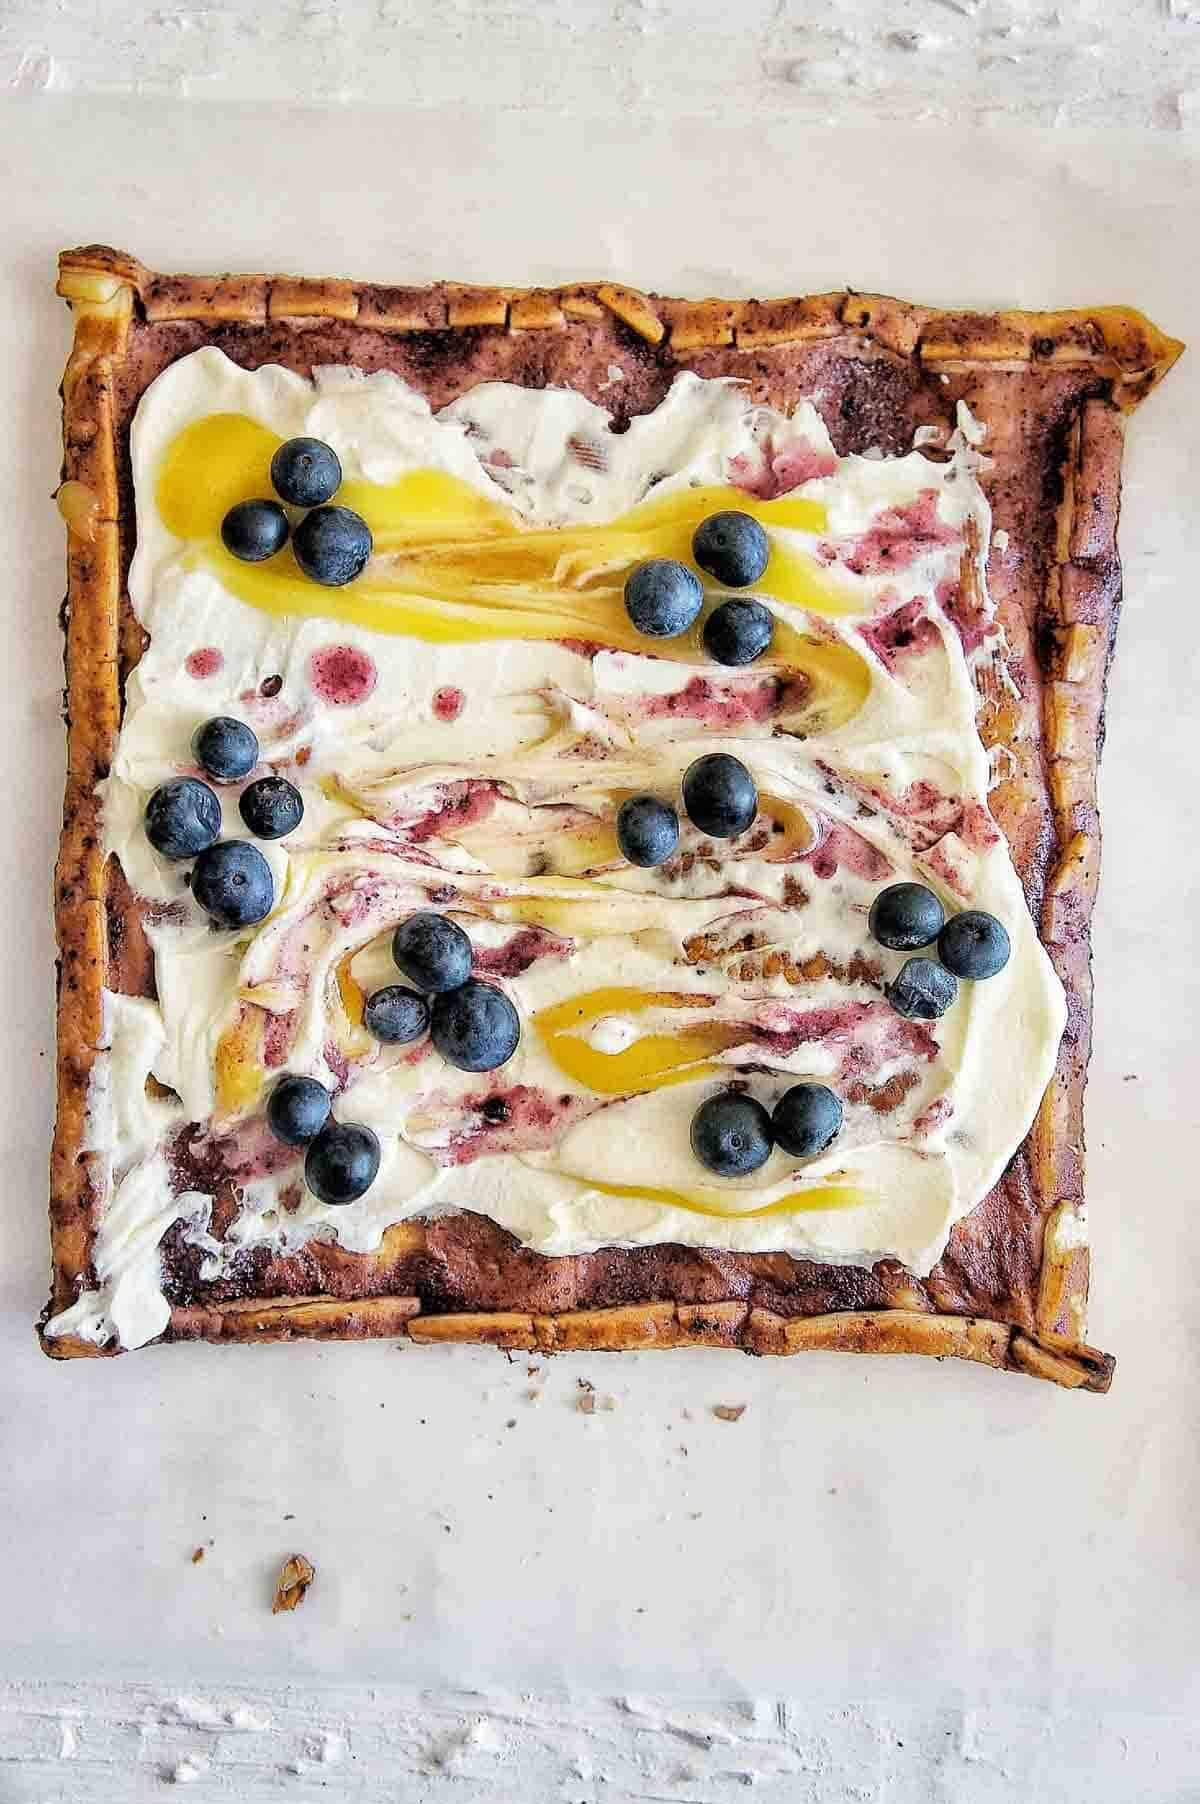 A puff pastry tart covered in blueberries, lemon curd, and cream on a white backdrop